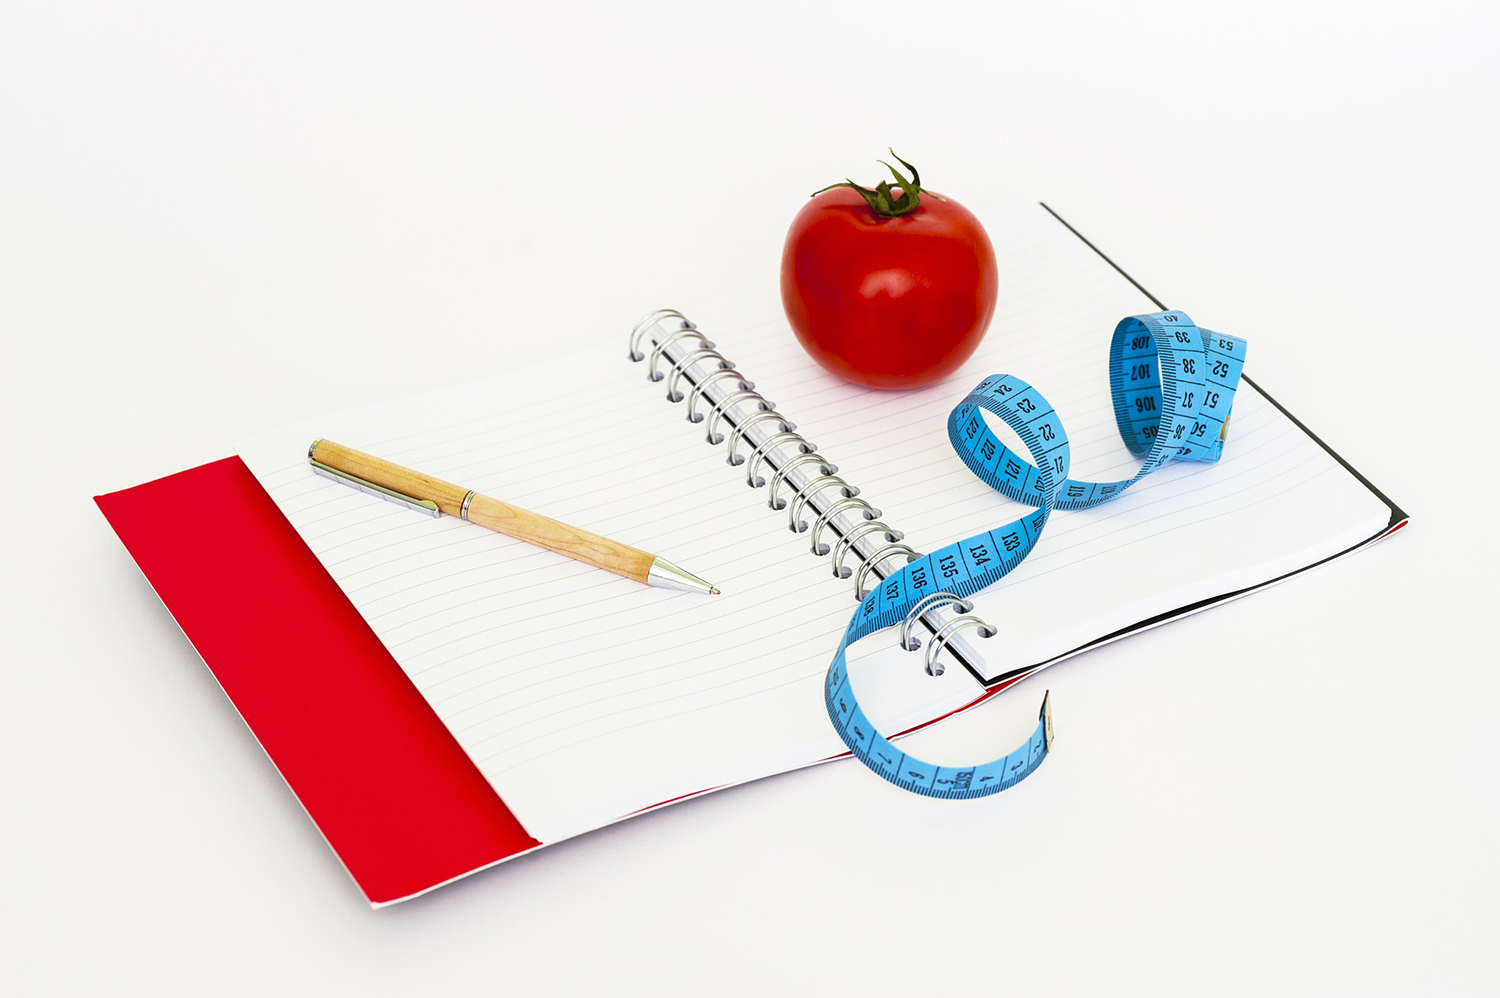 Swell Weight Loss And Dieting Concept Tape Measure Tomato Pen Download Free Architecture Designs Scobabritishbridgeorg